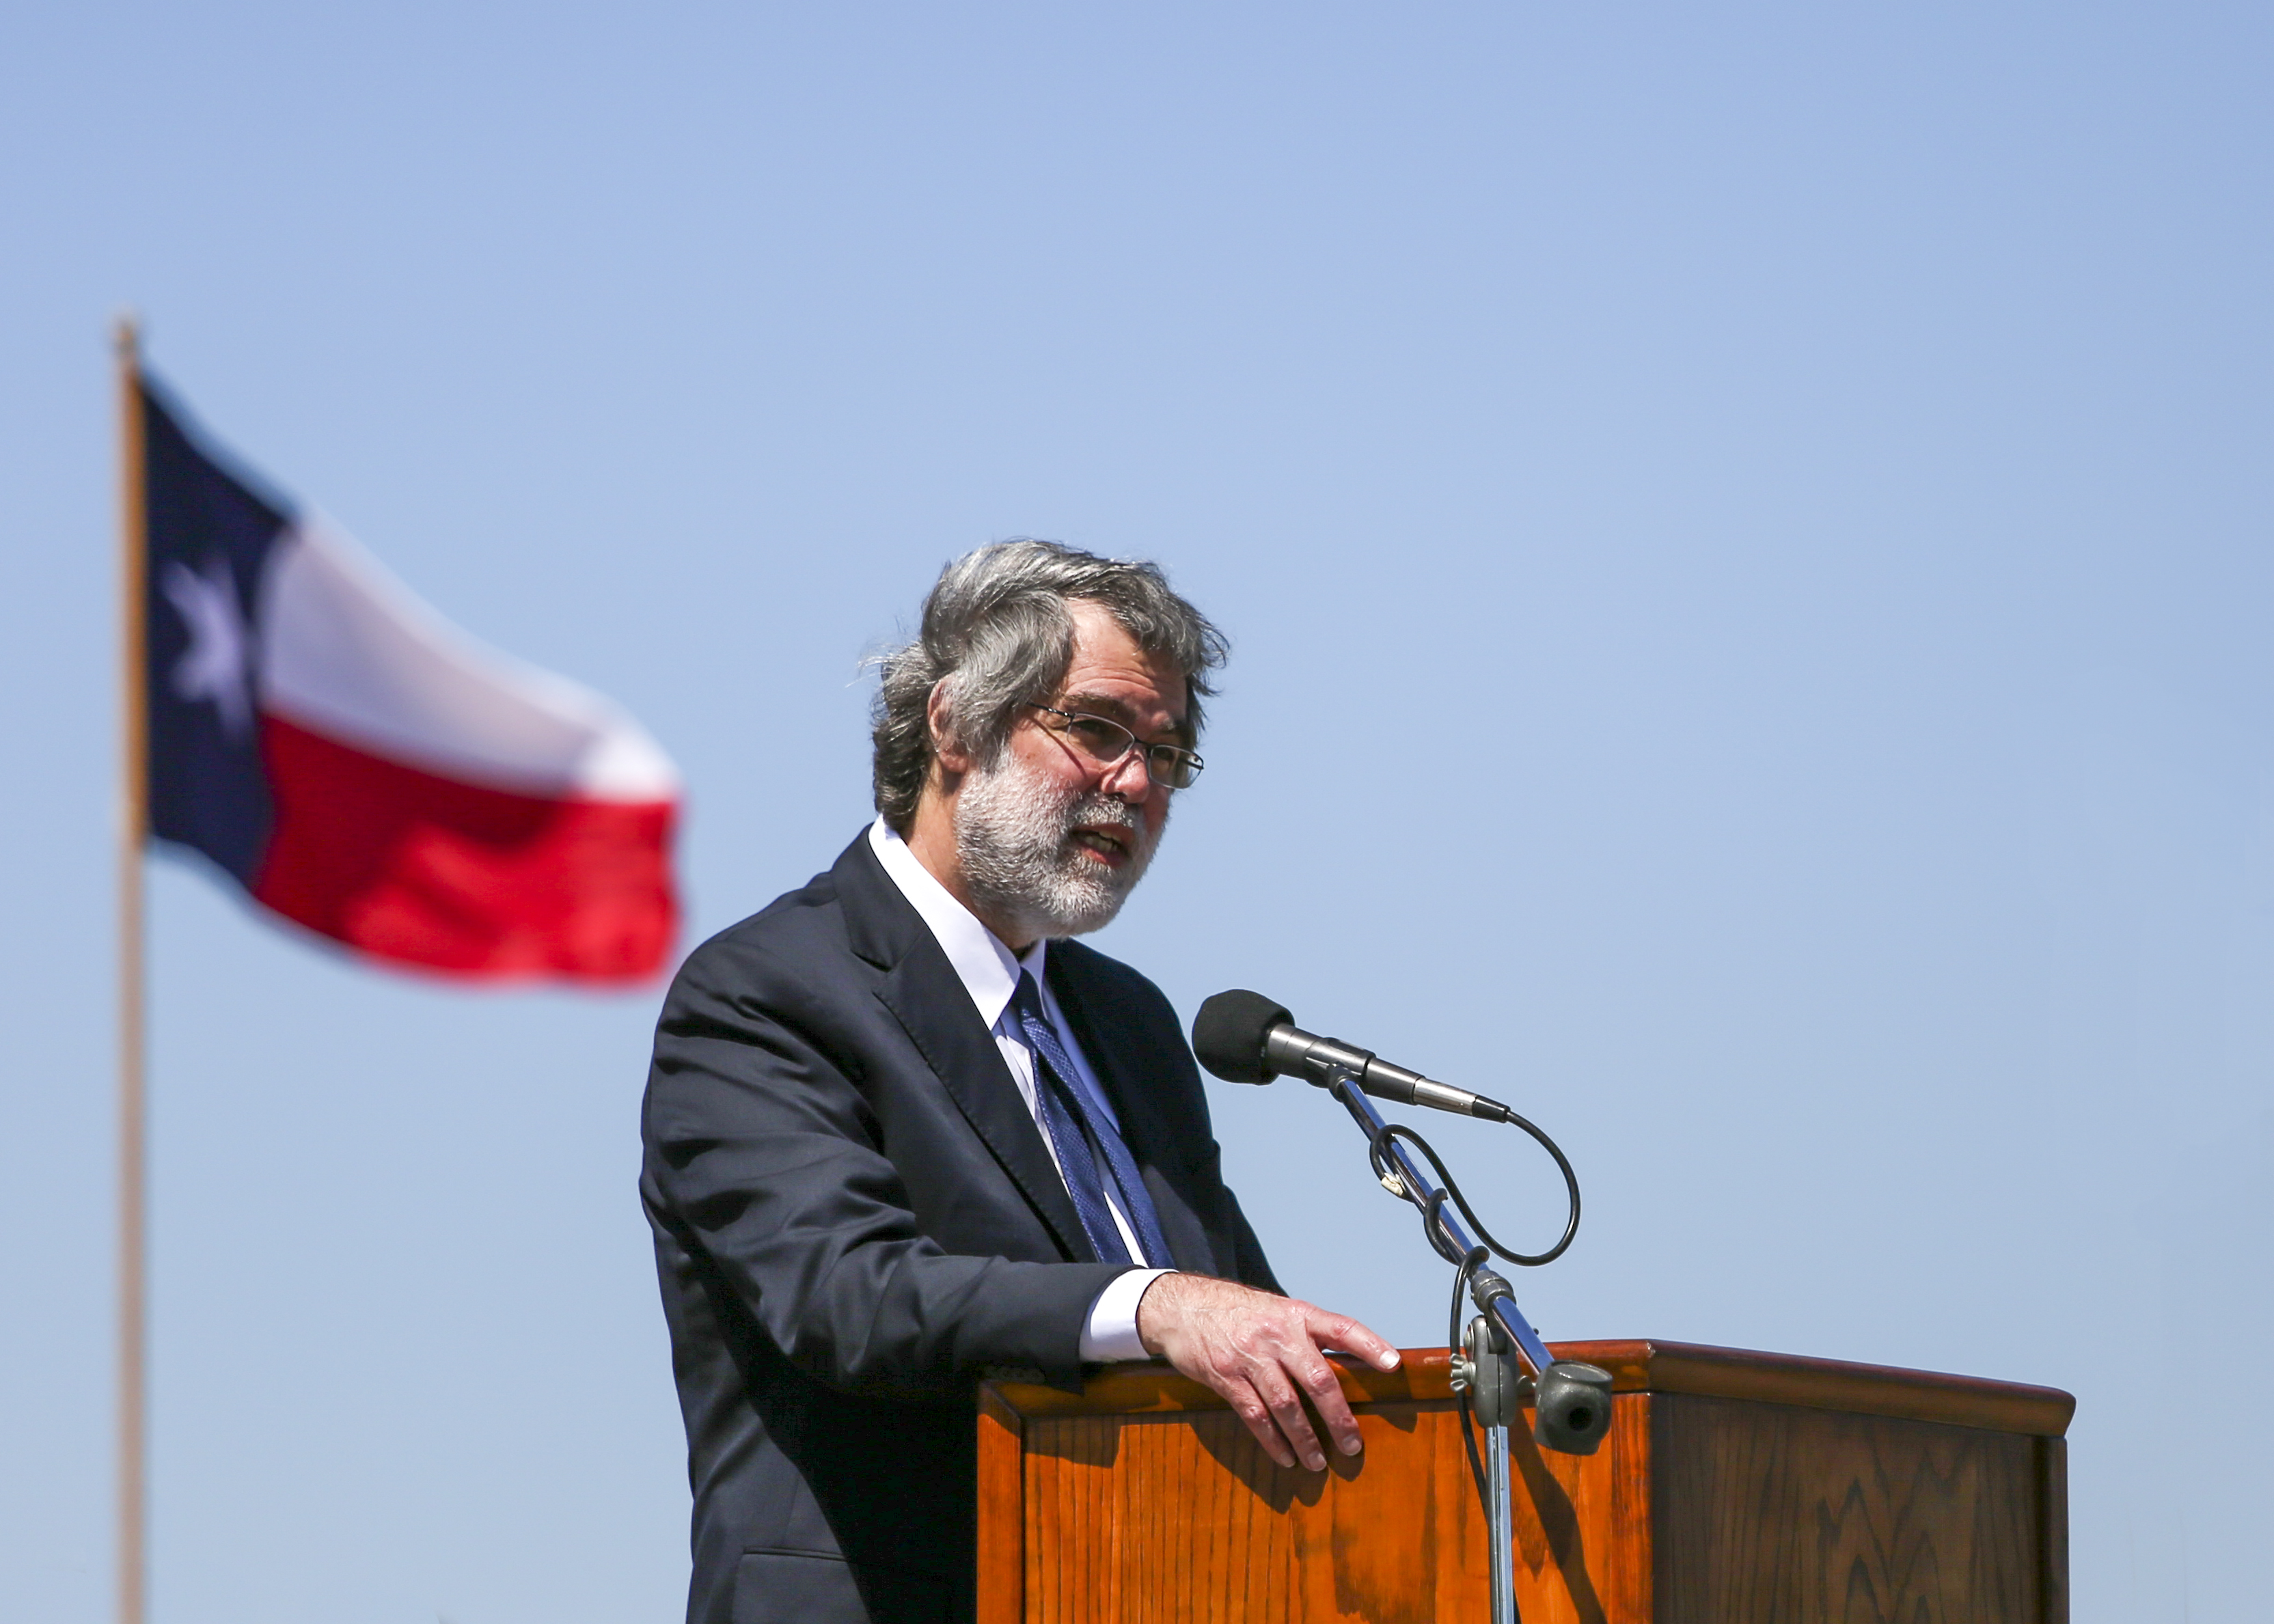 A man wearing a suit stands at a podium outside, with a Texas flag behind him.